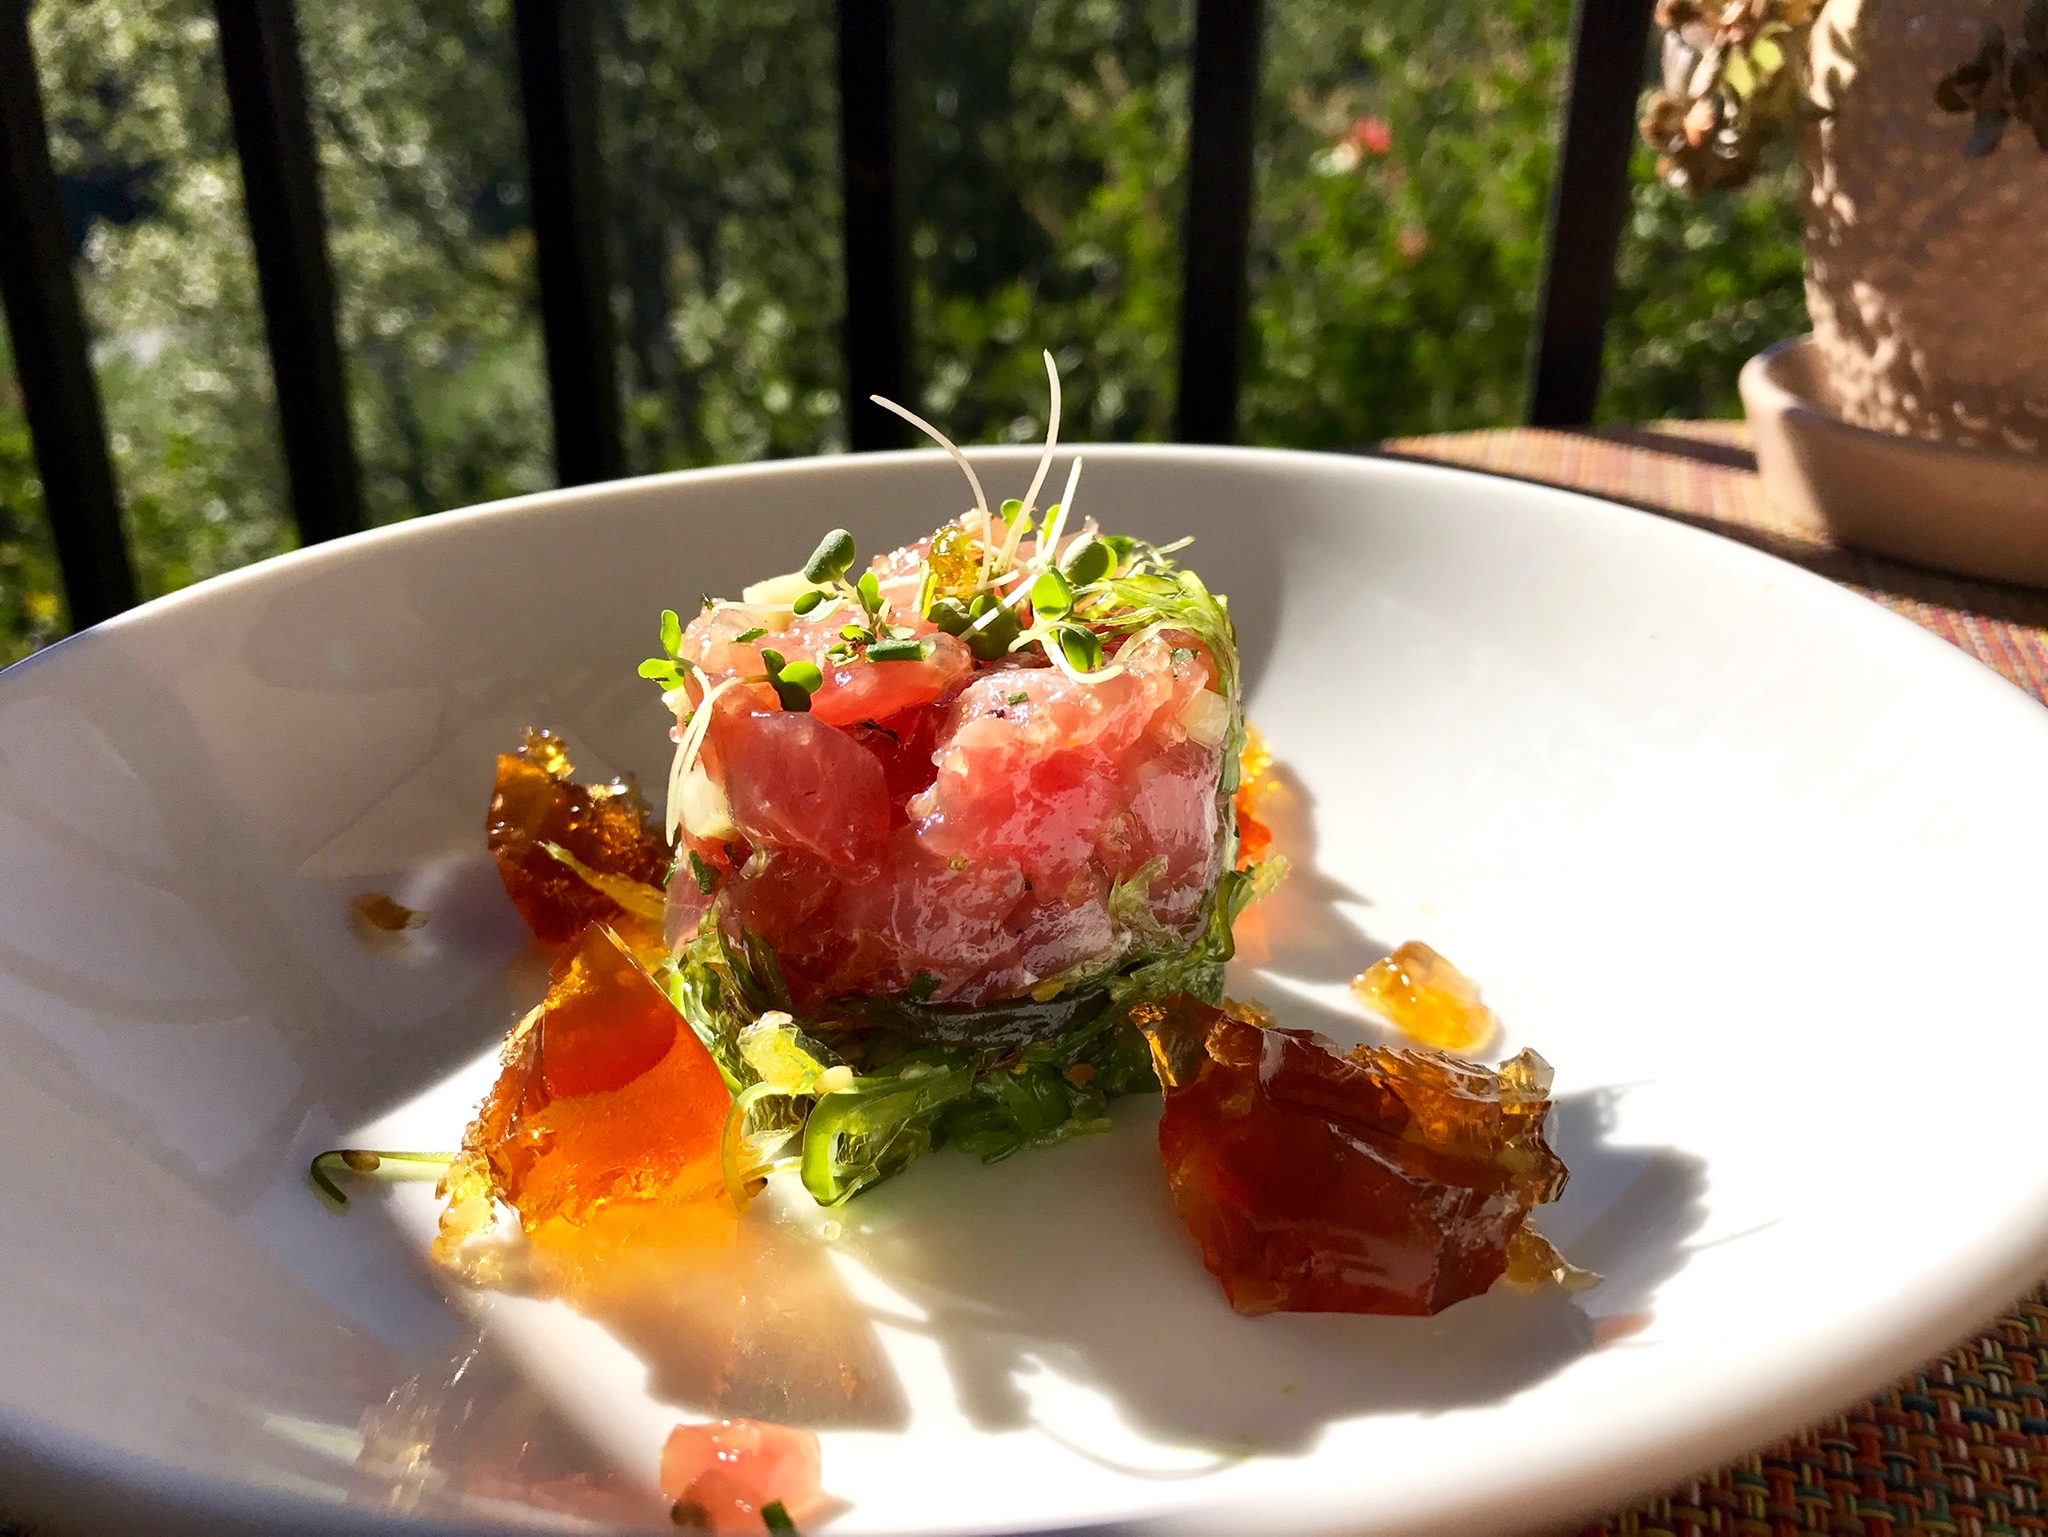 The delicious tuna tartare I had for lunch which paired beautiful with a chilled glass of white wine:)